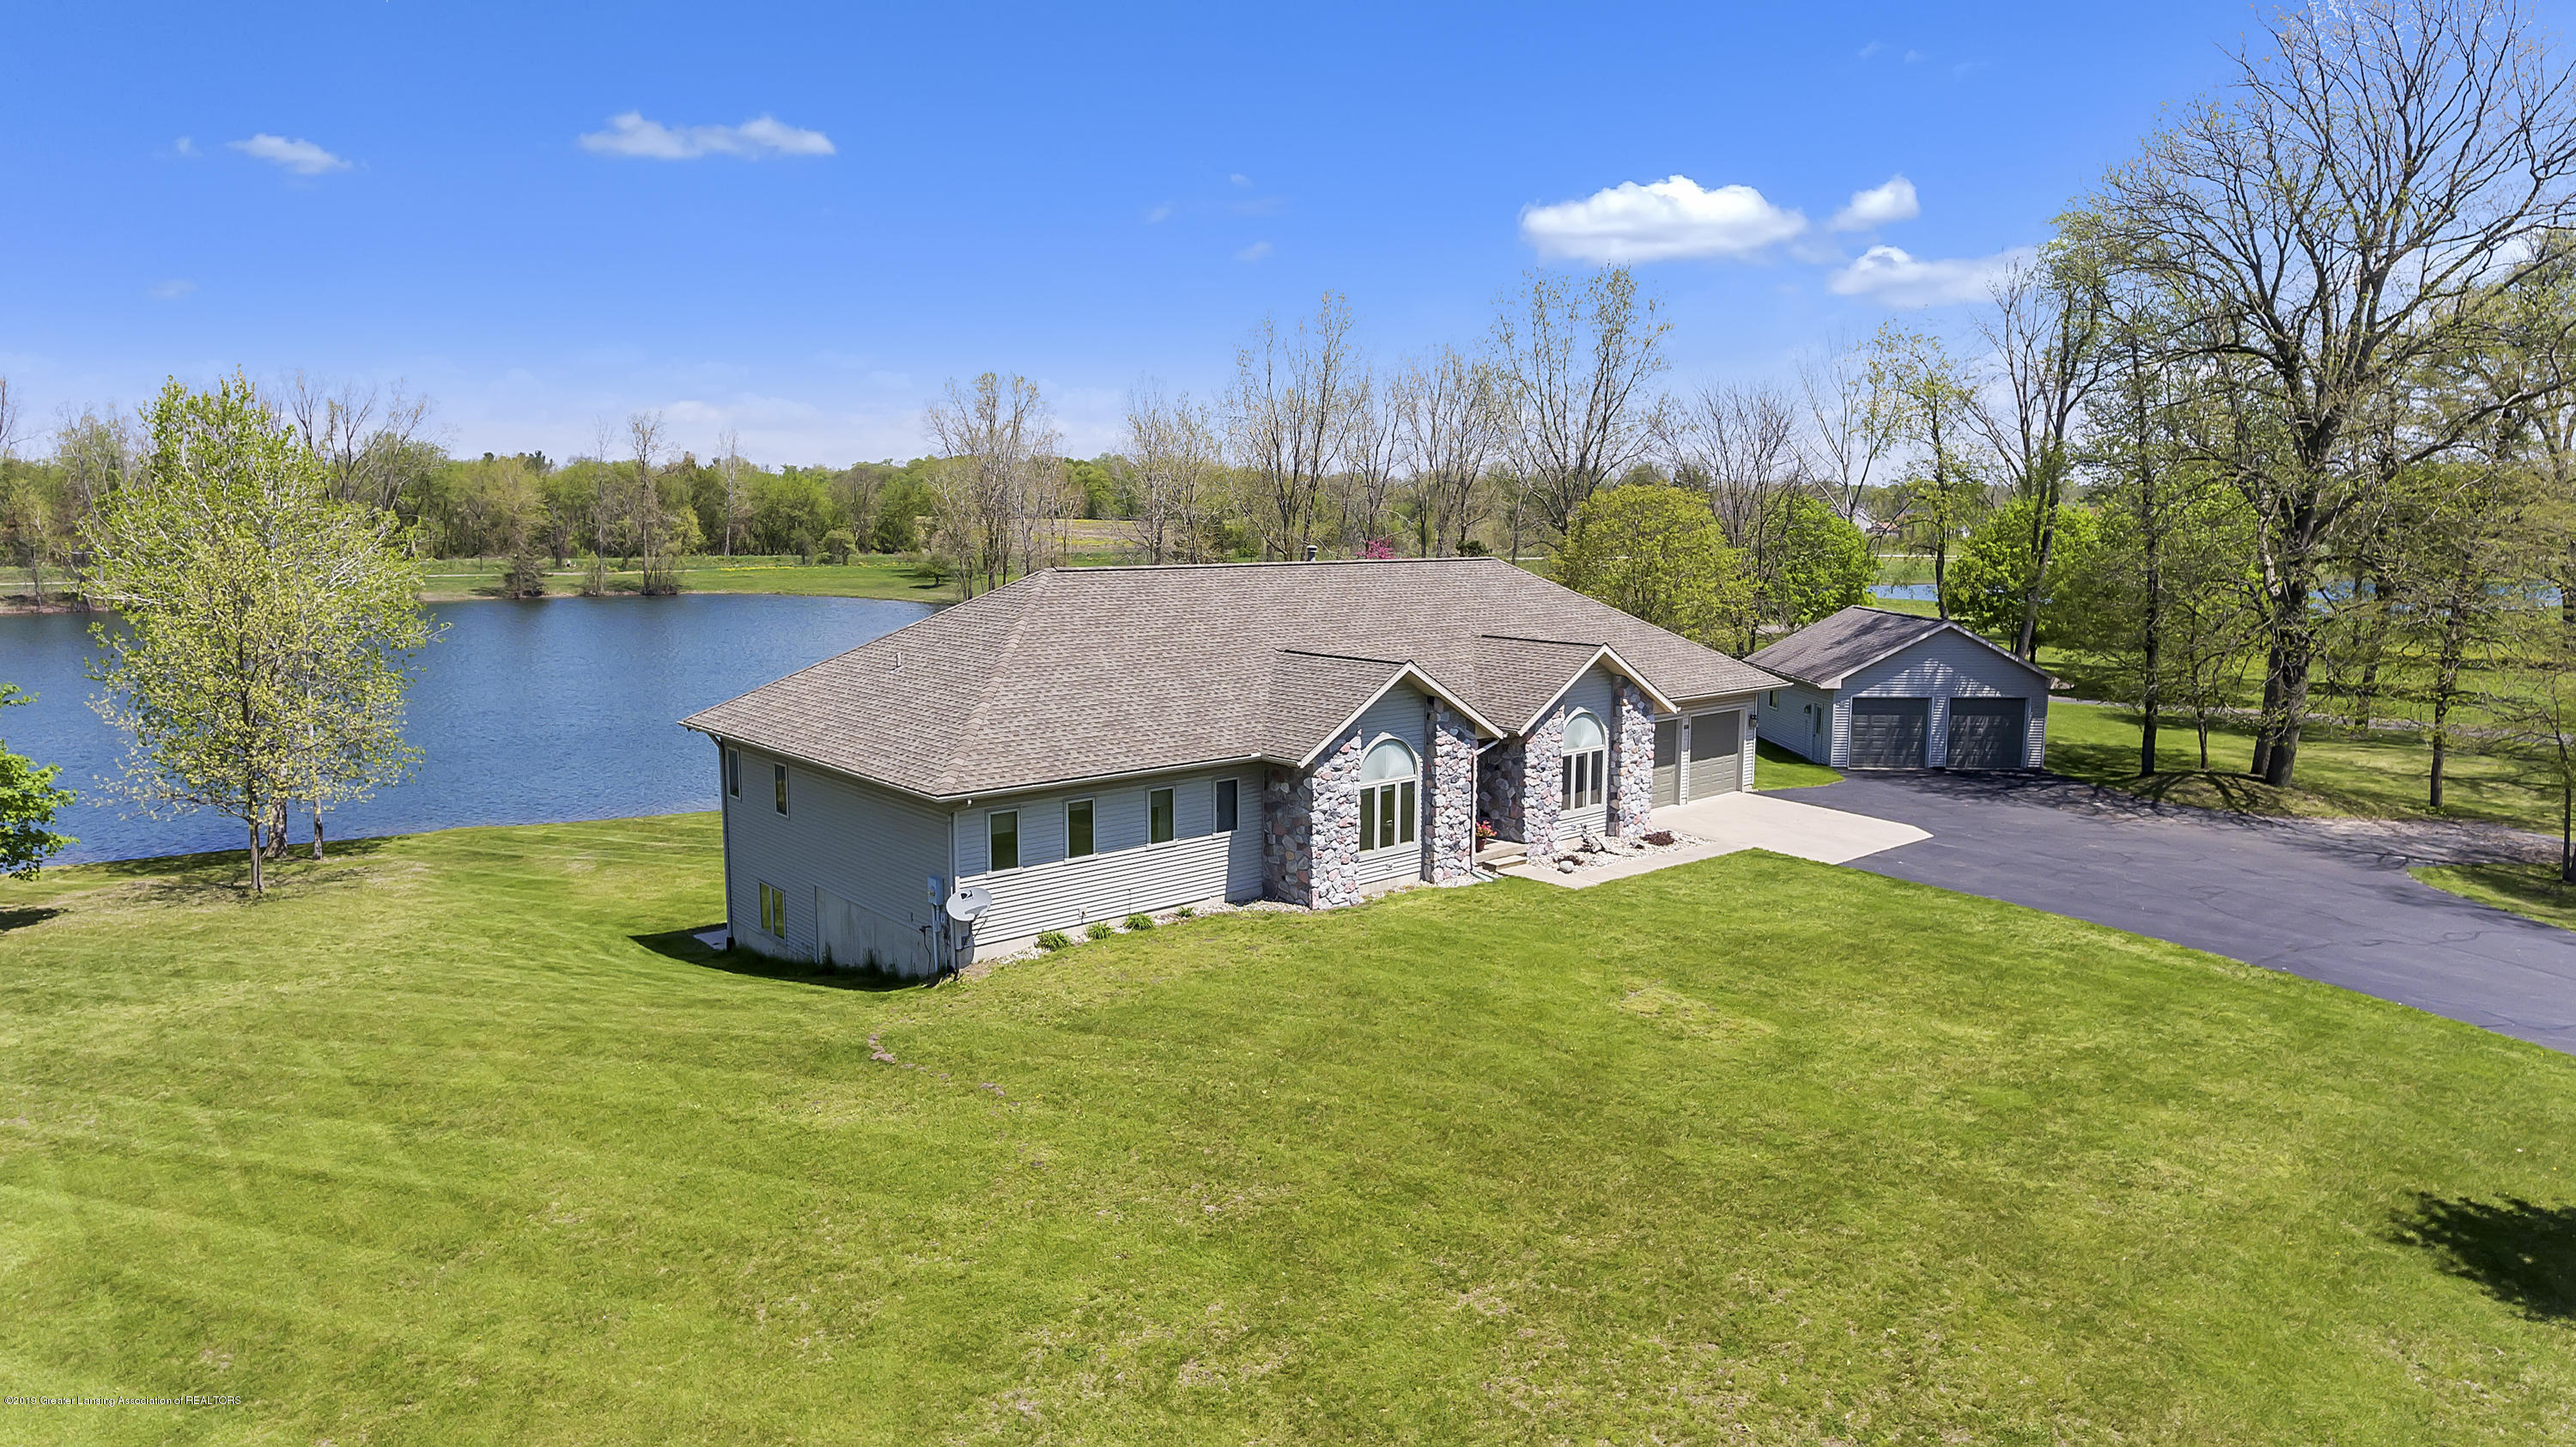 all around view of house:  8558 Ironstone Drive